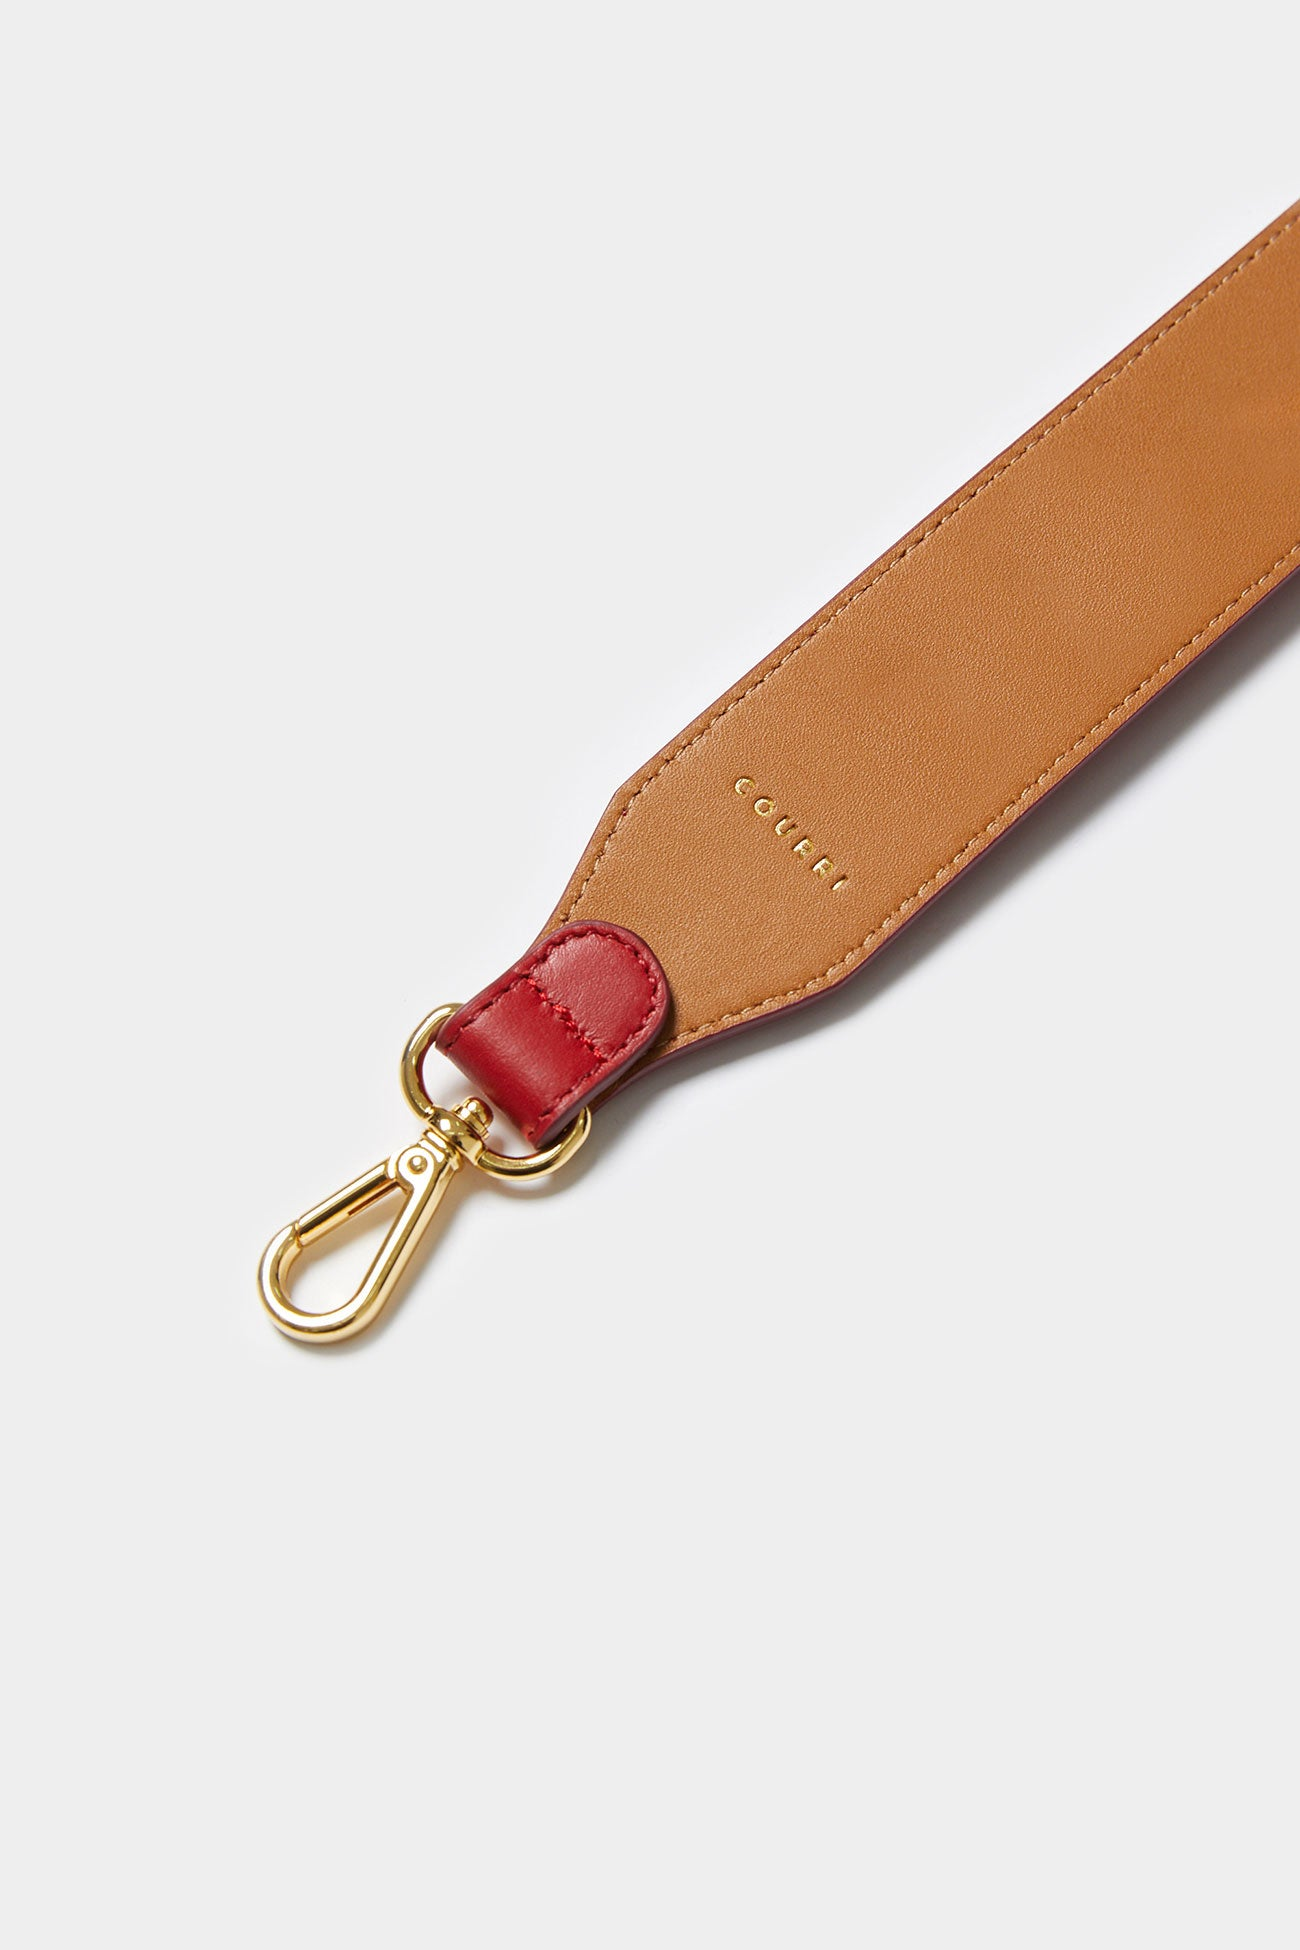 RED CODIE EMBELLISHED LEATHER STRAP [Long]